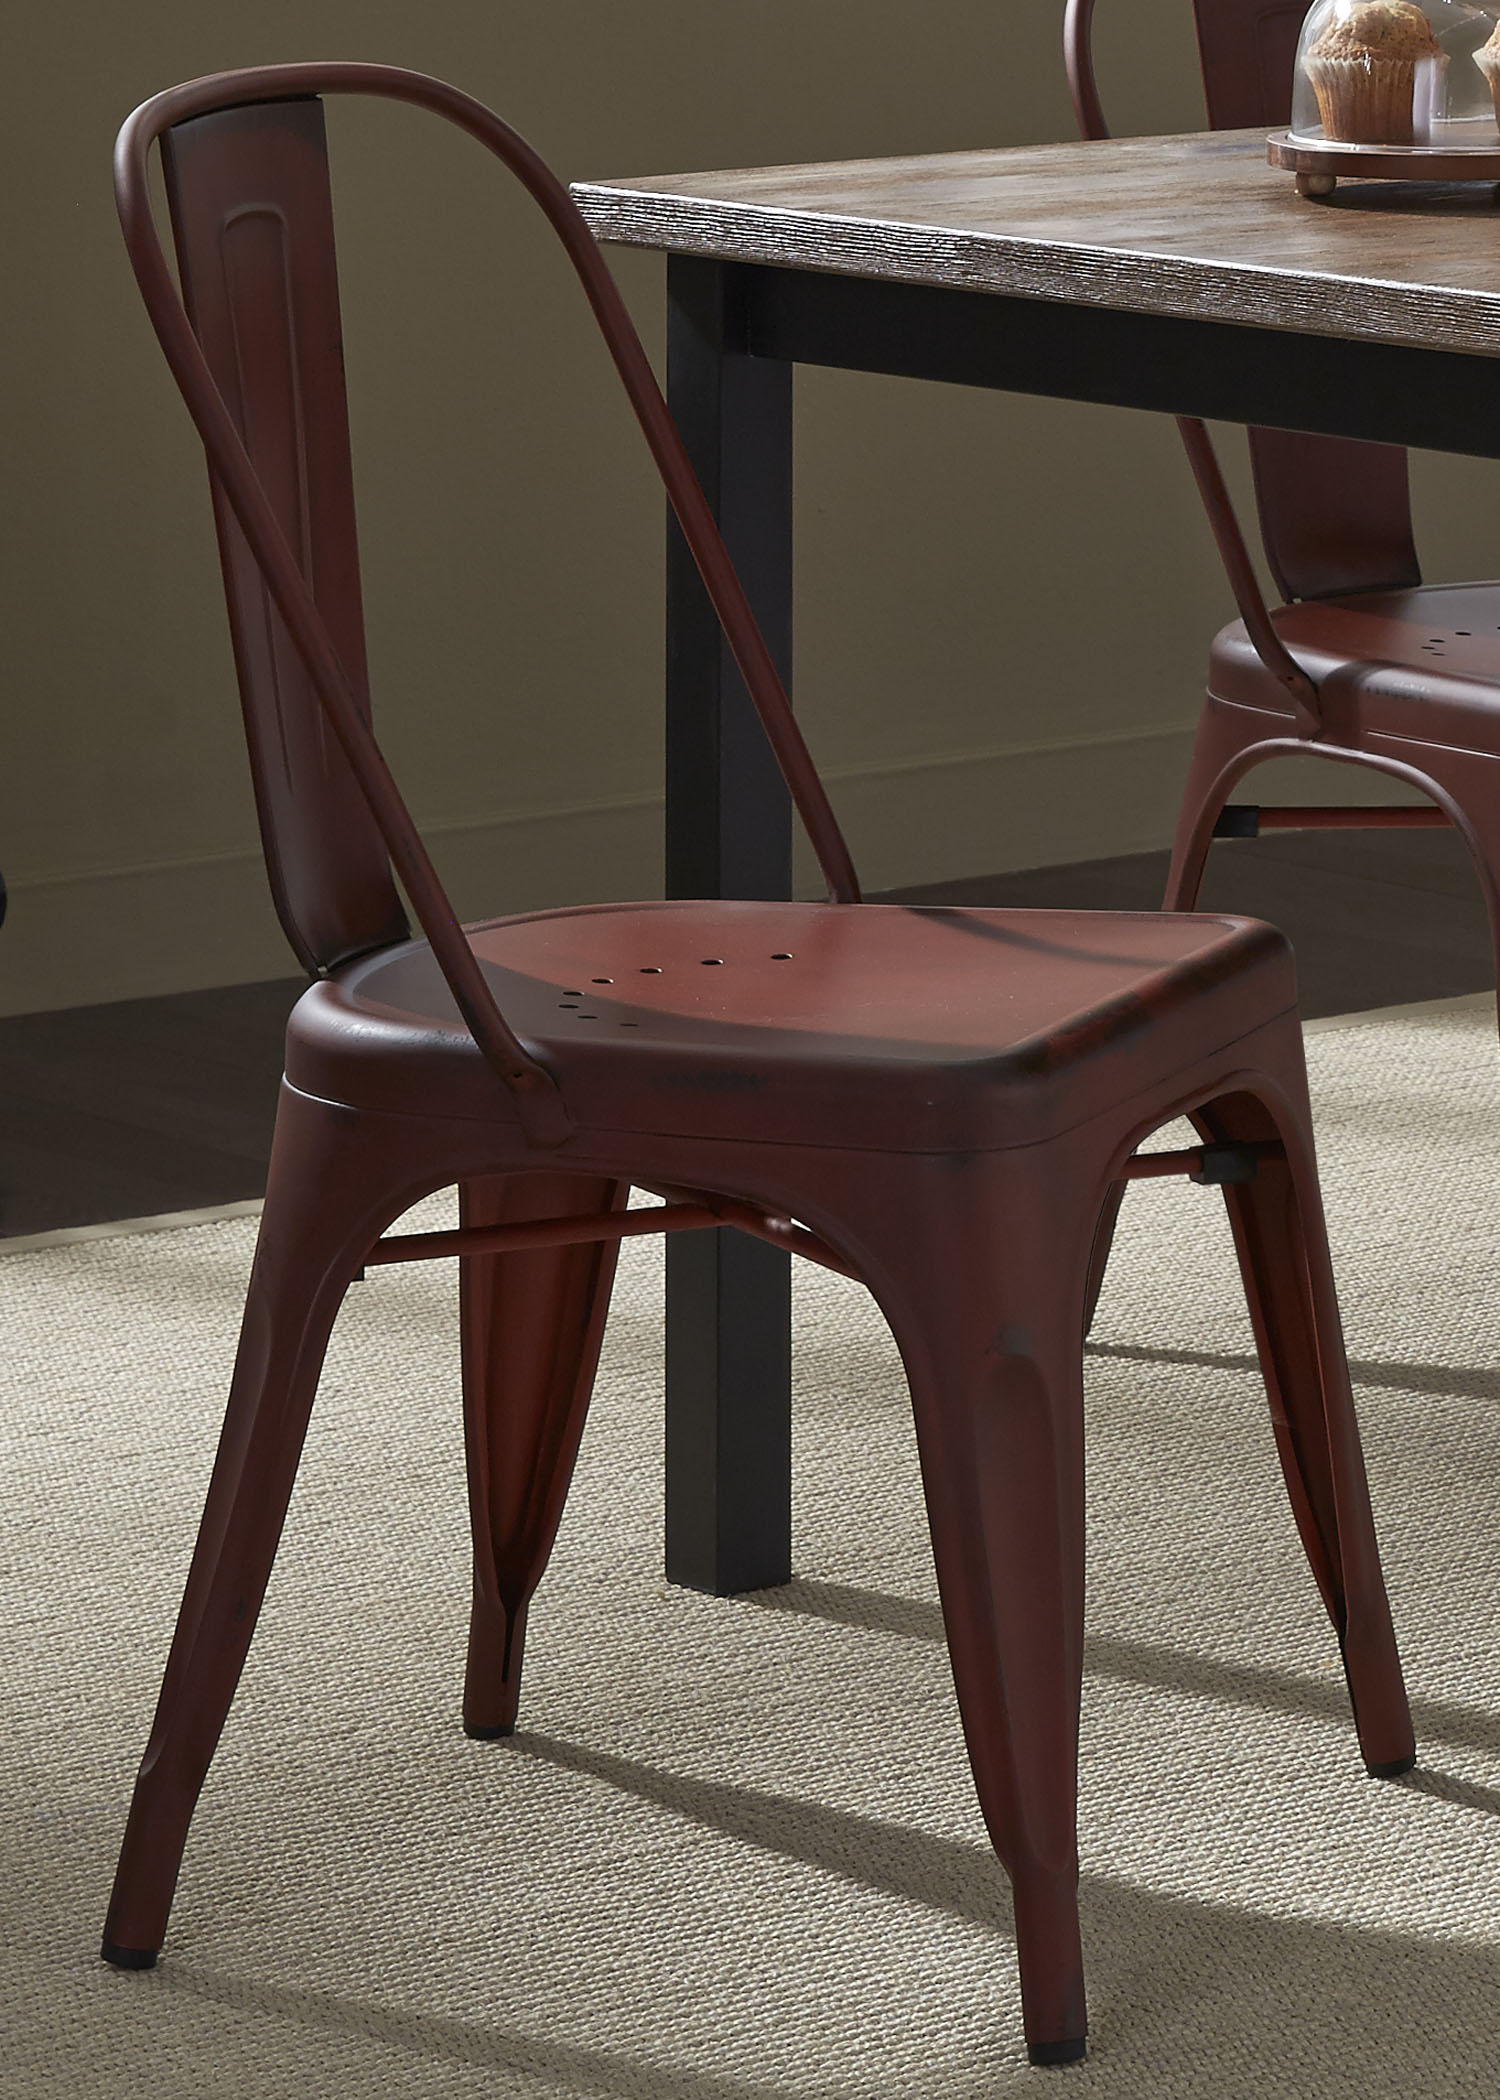 Vintage Dining Series Bow Back Dining Side Chair by Liberty Furniture at Lapeer Furniture & Mattress Center